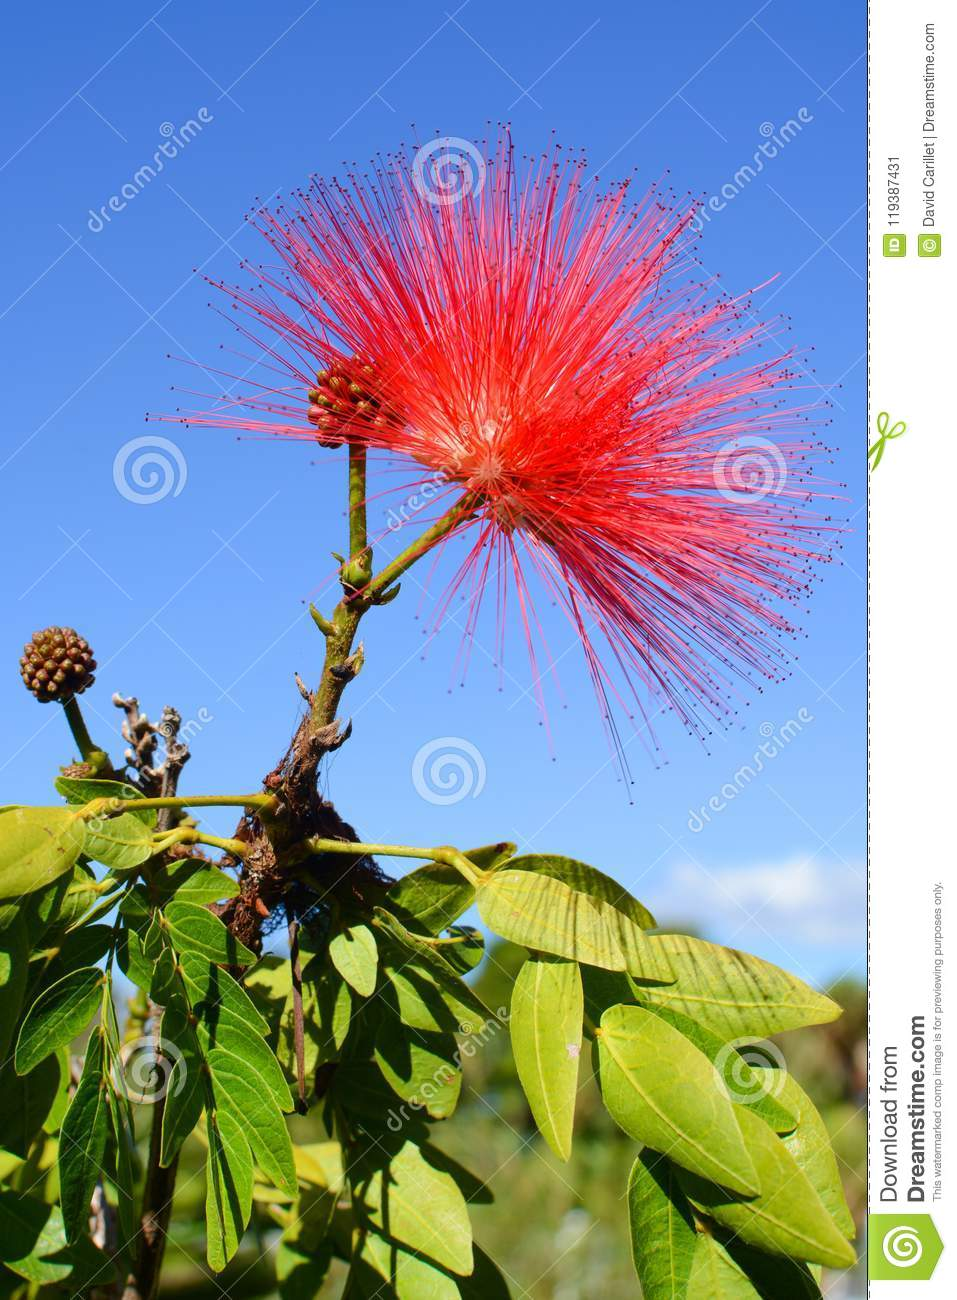 Powder Puff Plant With Delicate Red Flower Known By The Scientific